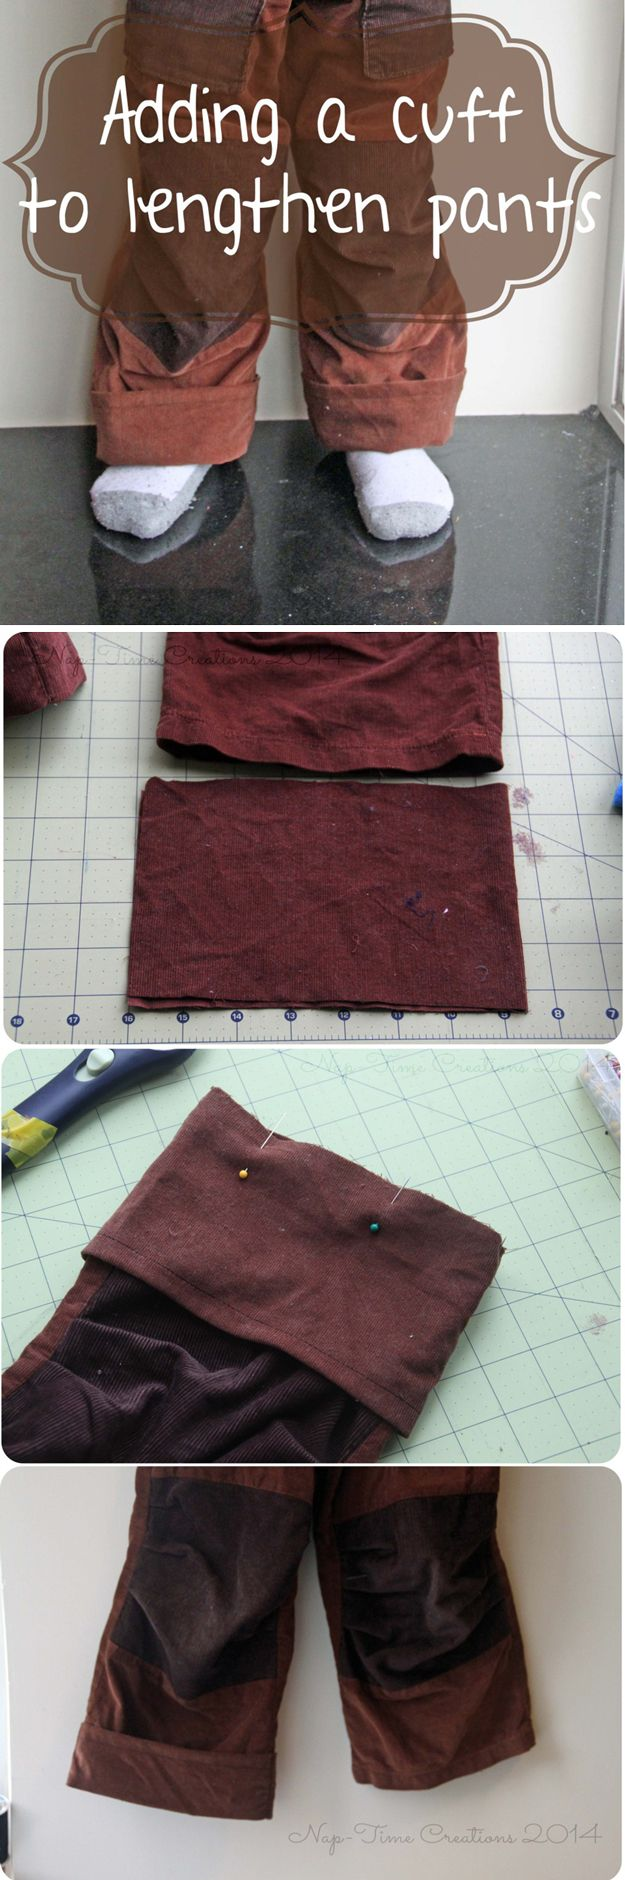 Ideas DIY Ropa Hack | http://artesaniasdebricolaje.ru/22-diy-hacks-to-make-your-clothing-last-longer/